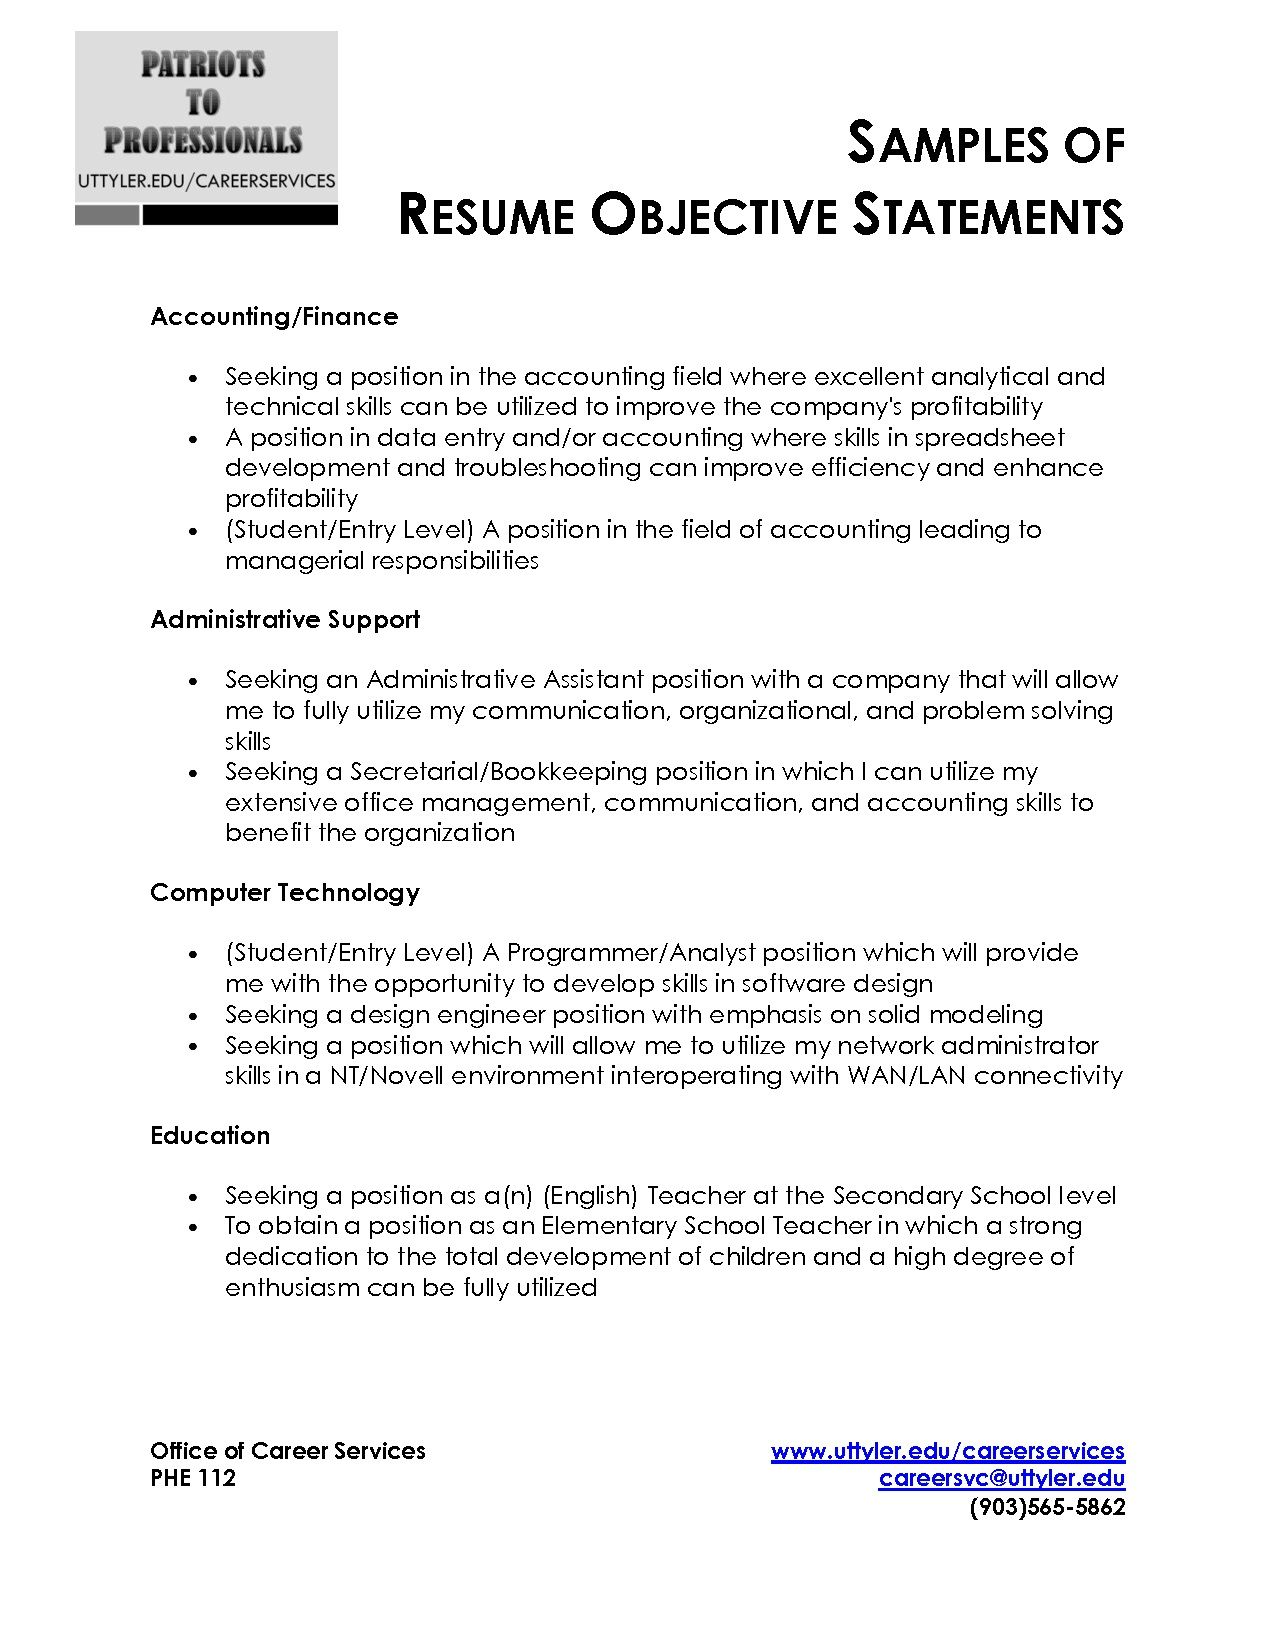 Sample Resume Objective Statement Sample Resume Objective Statement  Adsbygoogle  Window